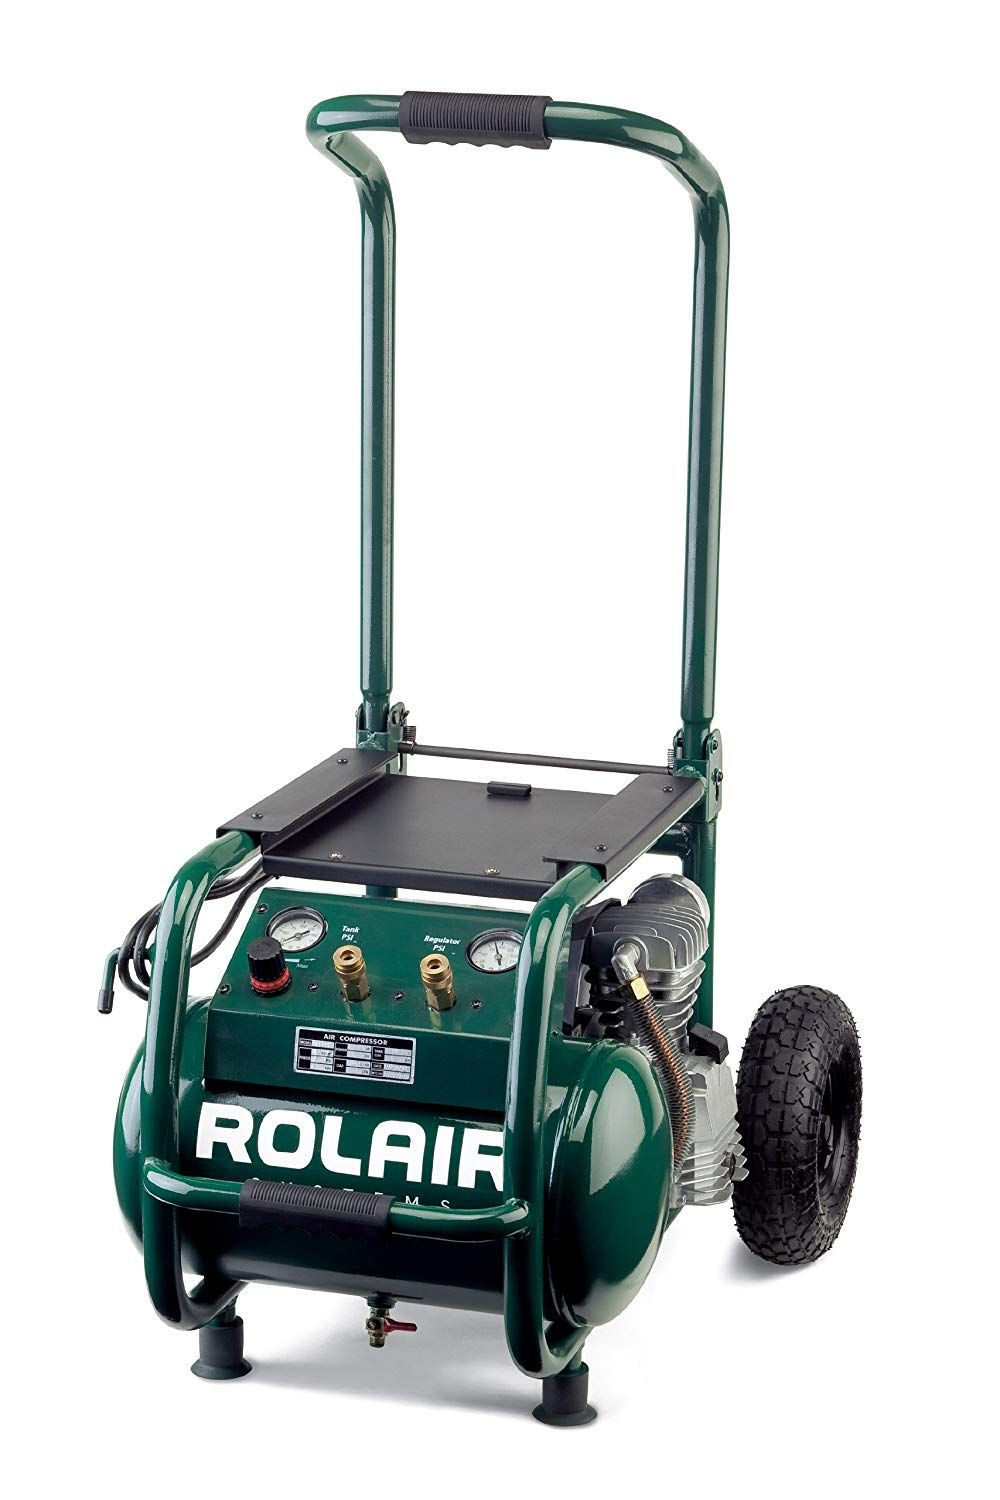 Rolair VT25BIG 2.5 HP Wheeled Compressor with Overload